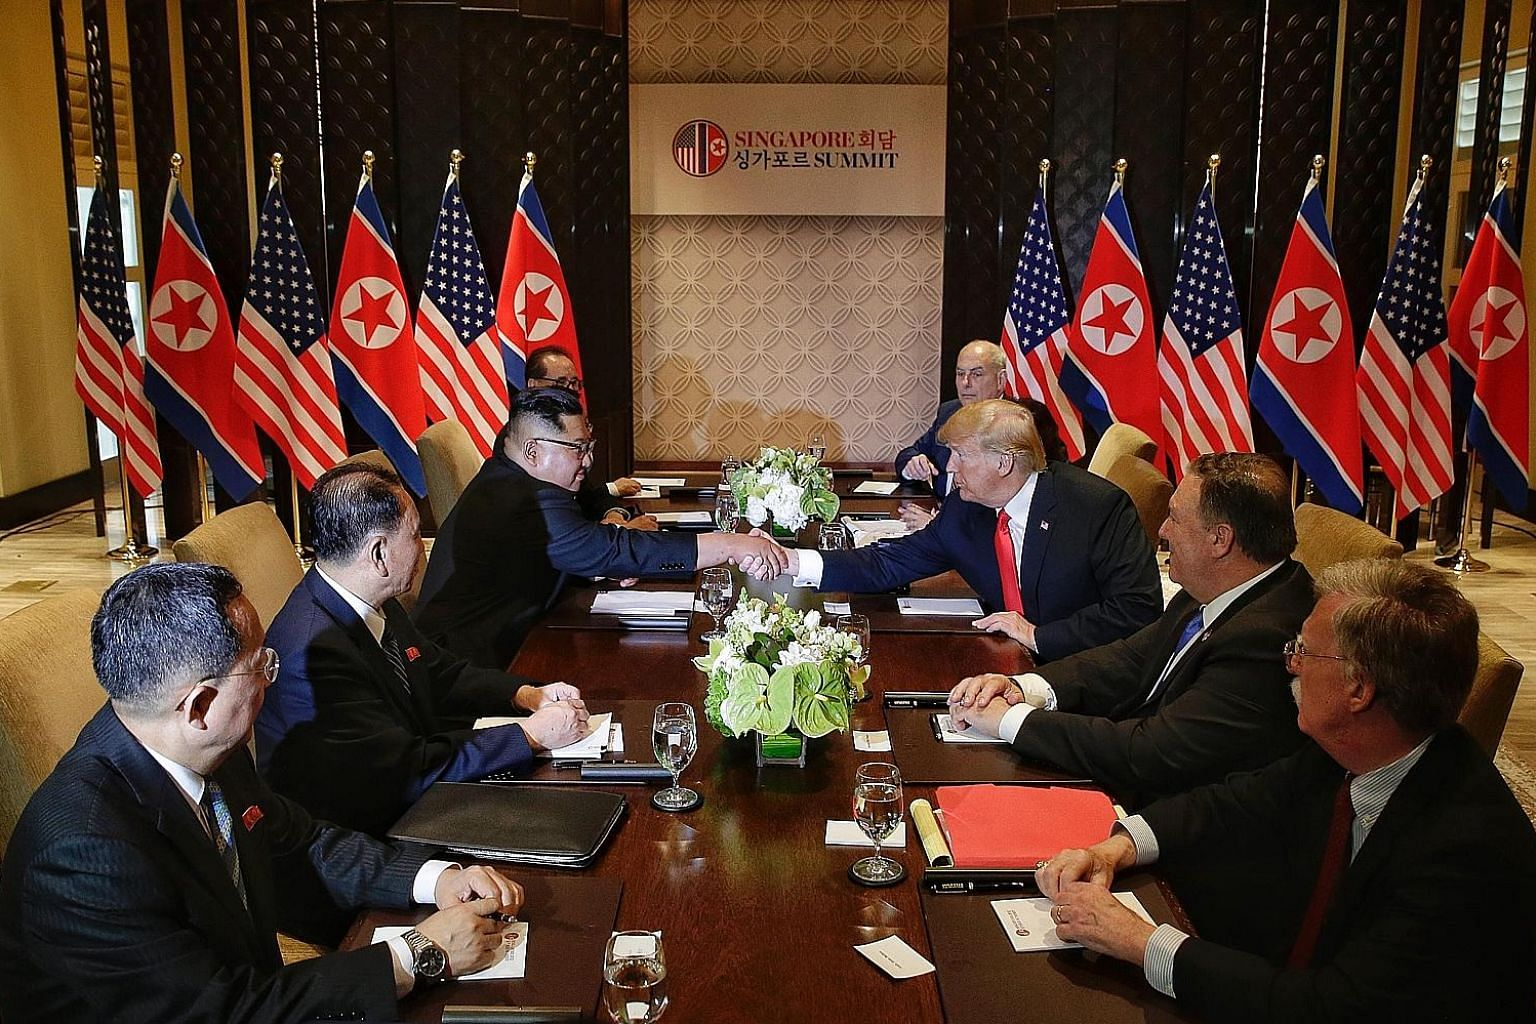 North Korean leader Kim Jong Un and United States President Donald Trump exchanging a handshake at a meeting held at Capella Singapore last June, during the leaders' historic first summit.